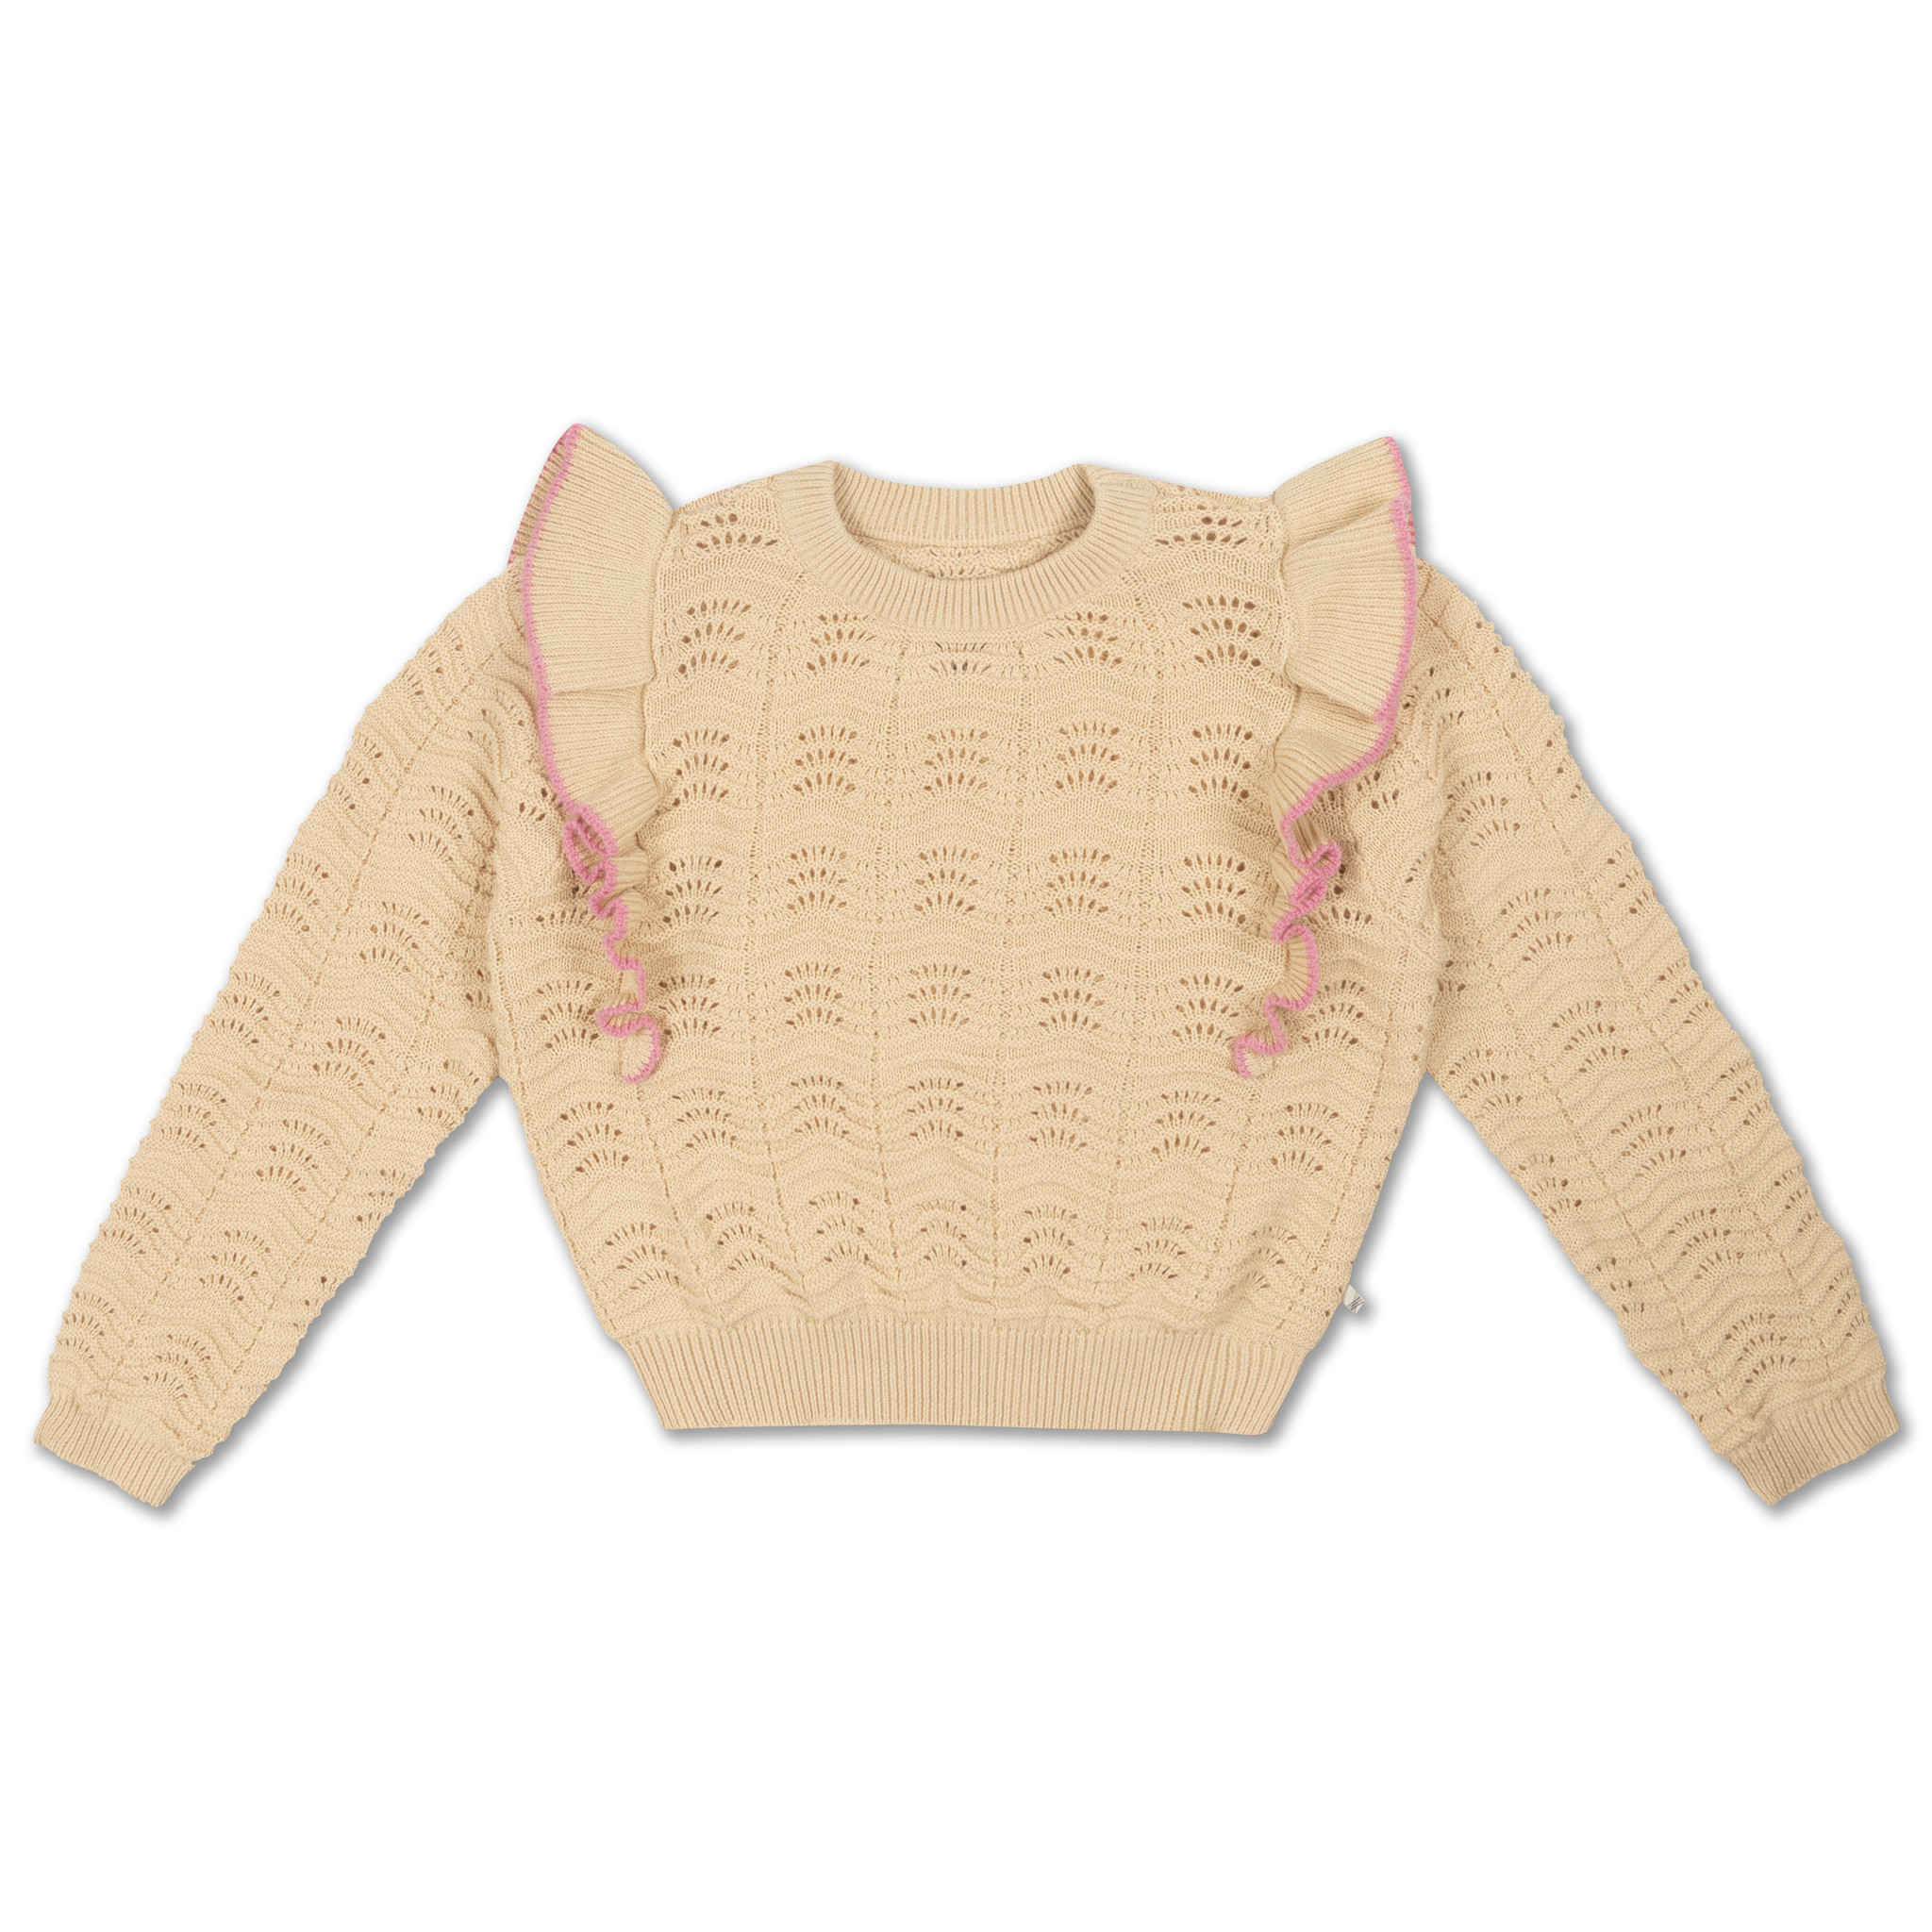 Knit sweater - Vintage White-1